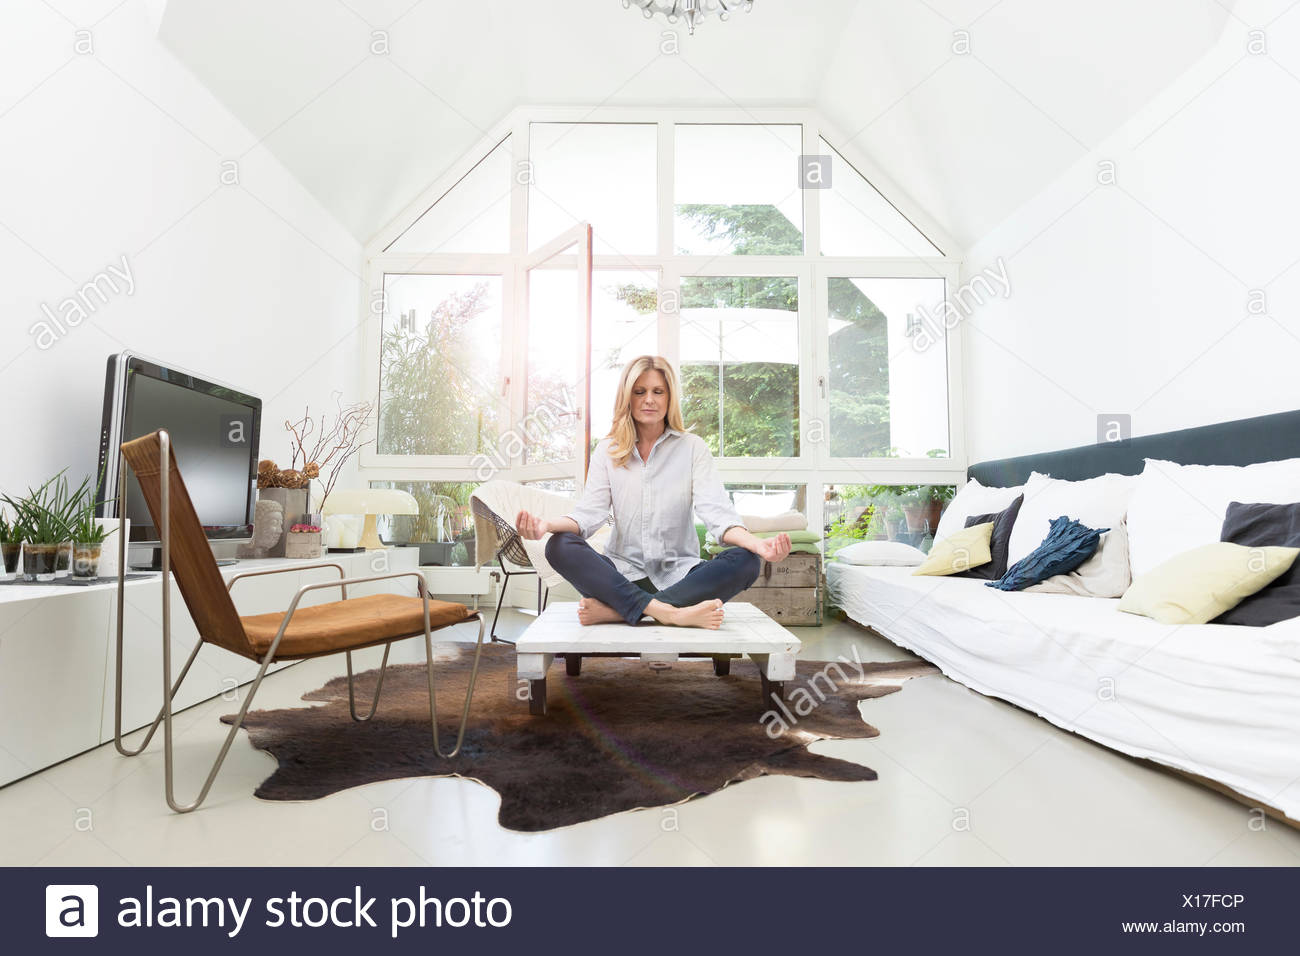 Blond woman sitting on coffee table, meditating - Stock Image